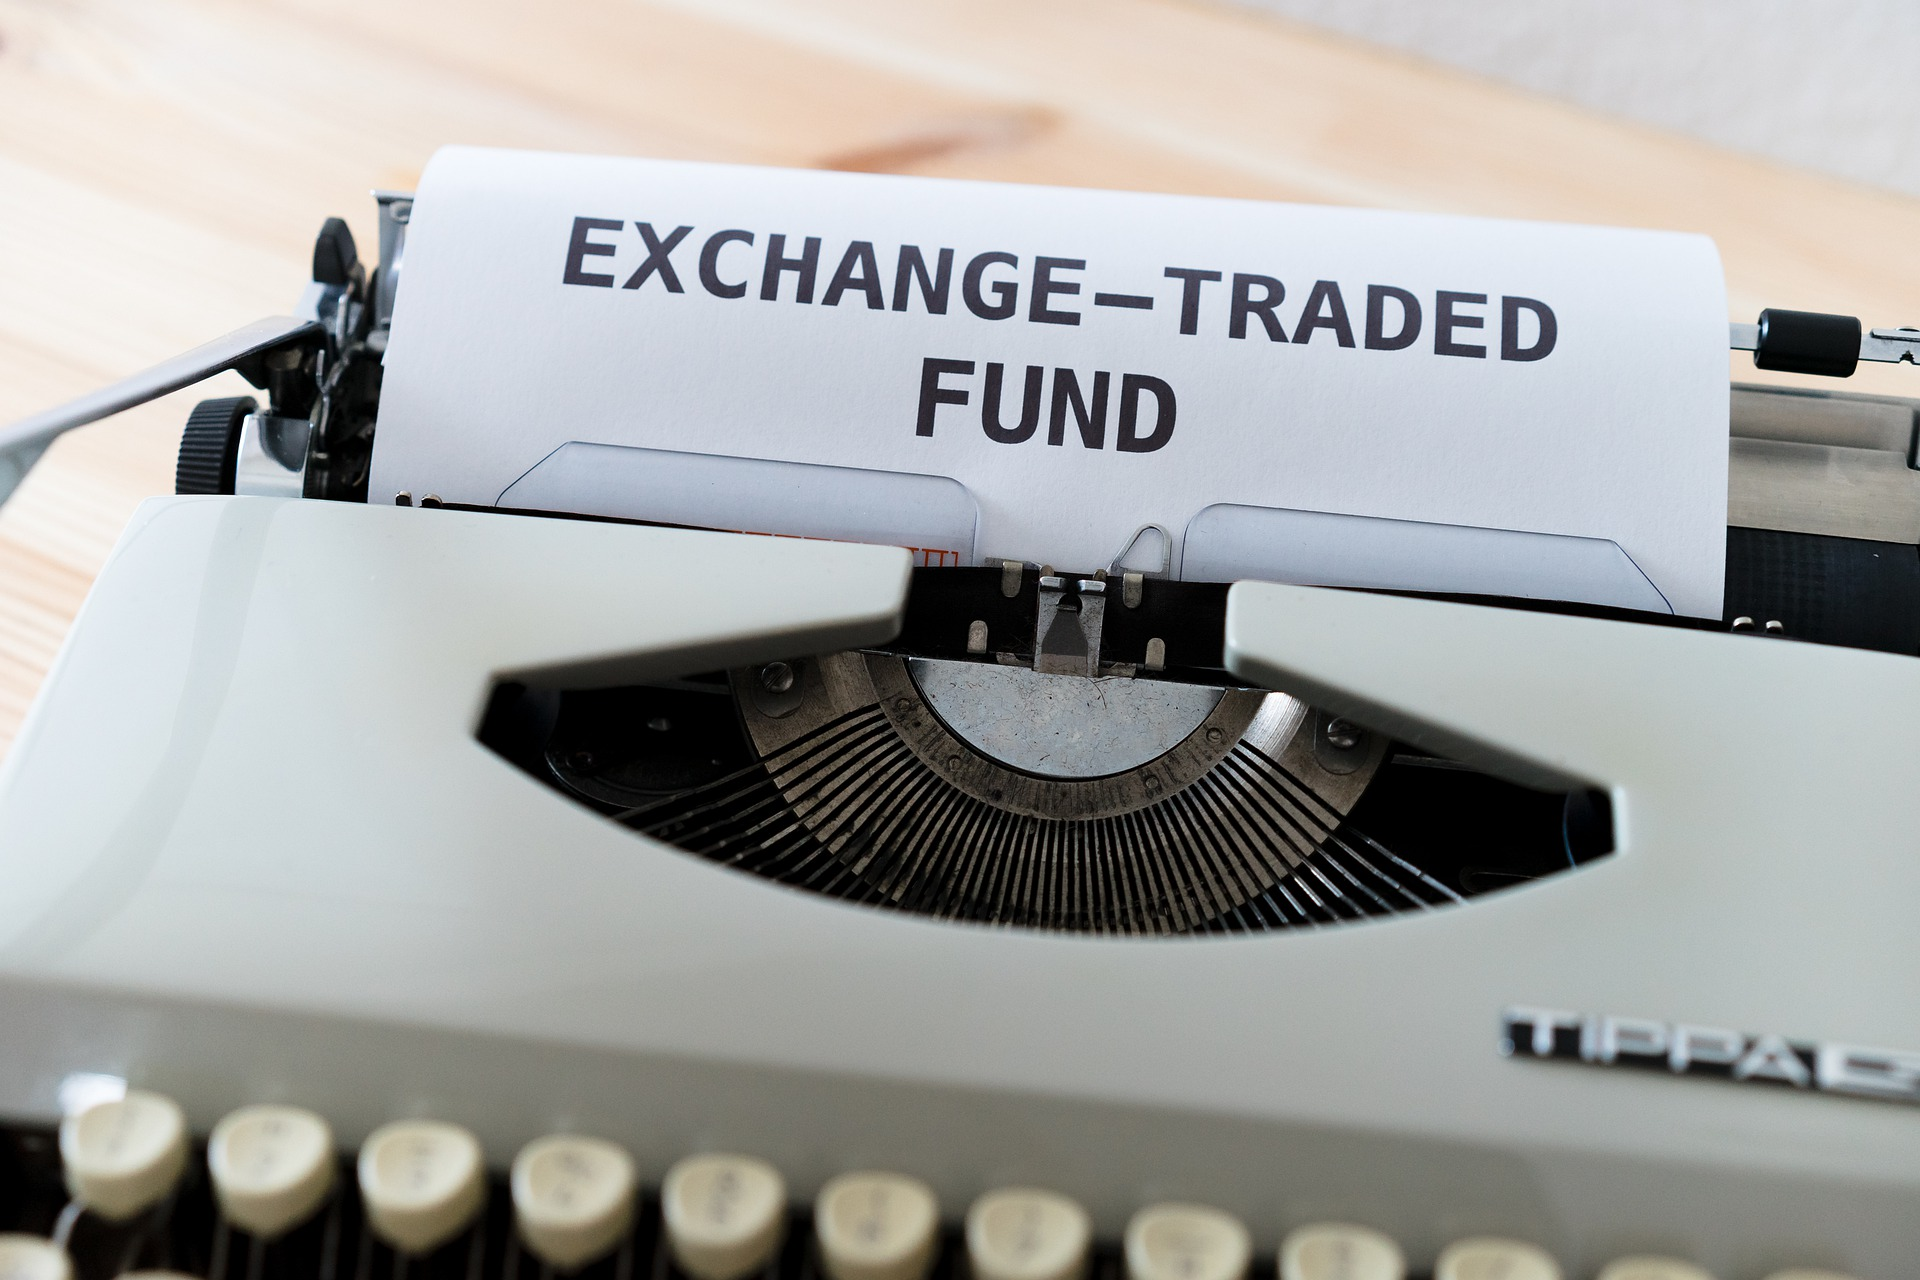 VanEck Rolls Out ETF-Like Bitcoin Product for Investors Based in Europe and Asia